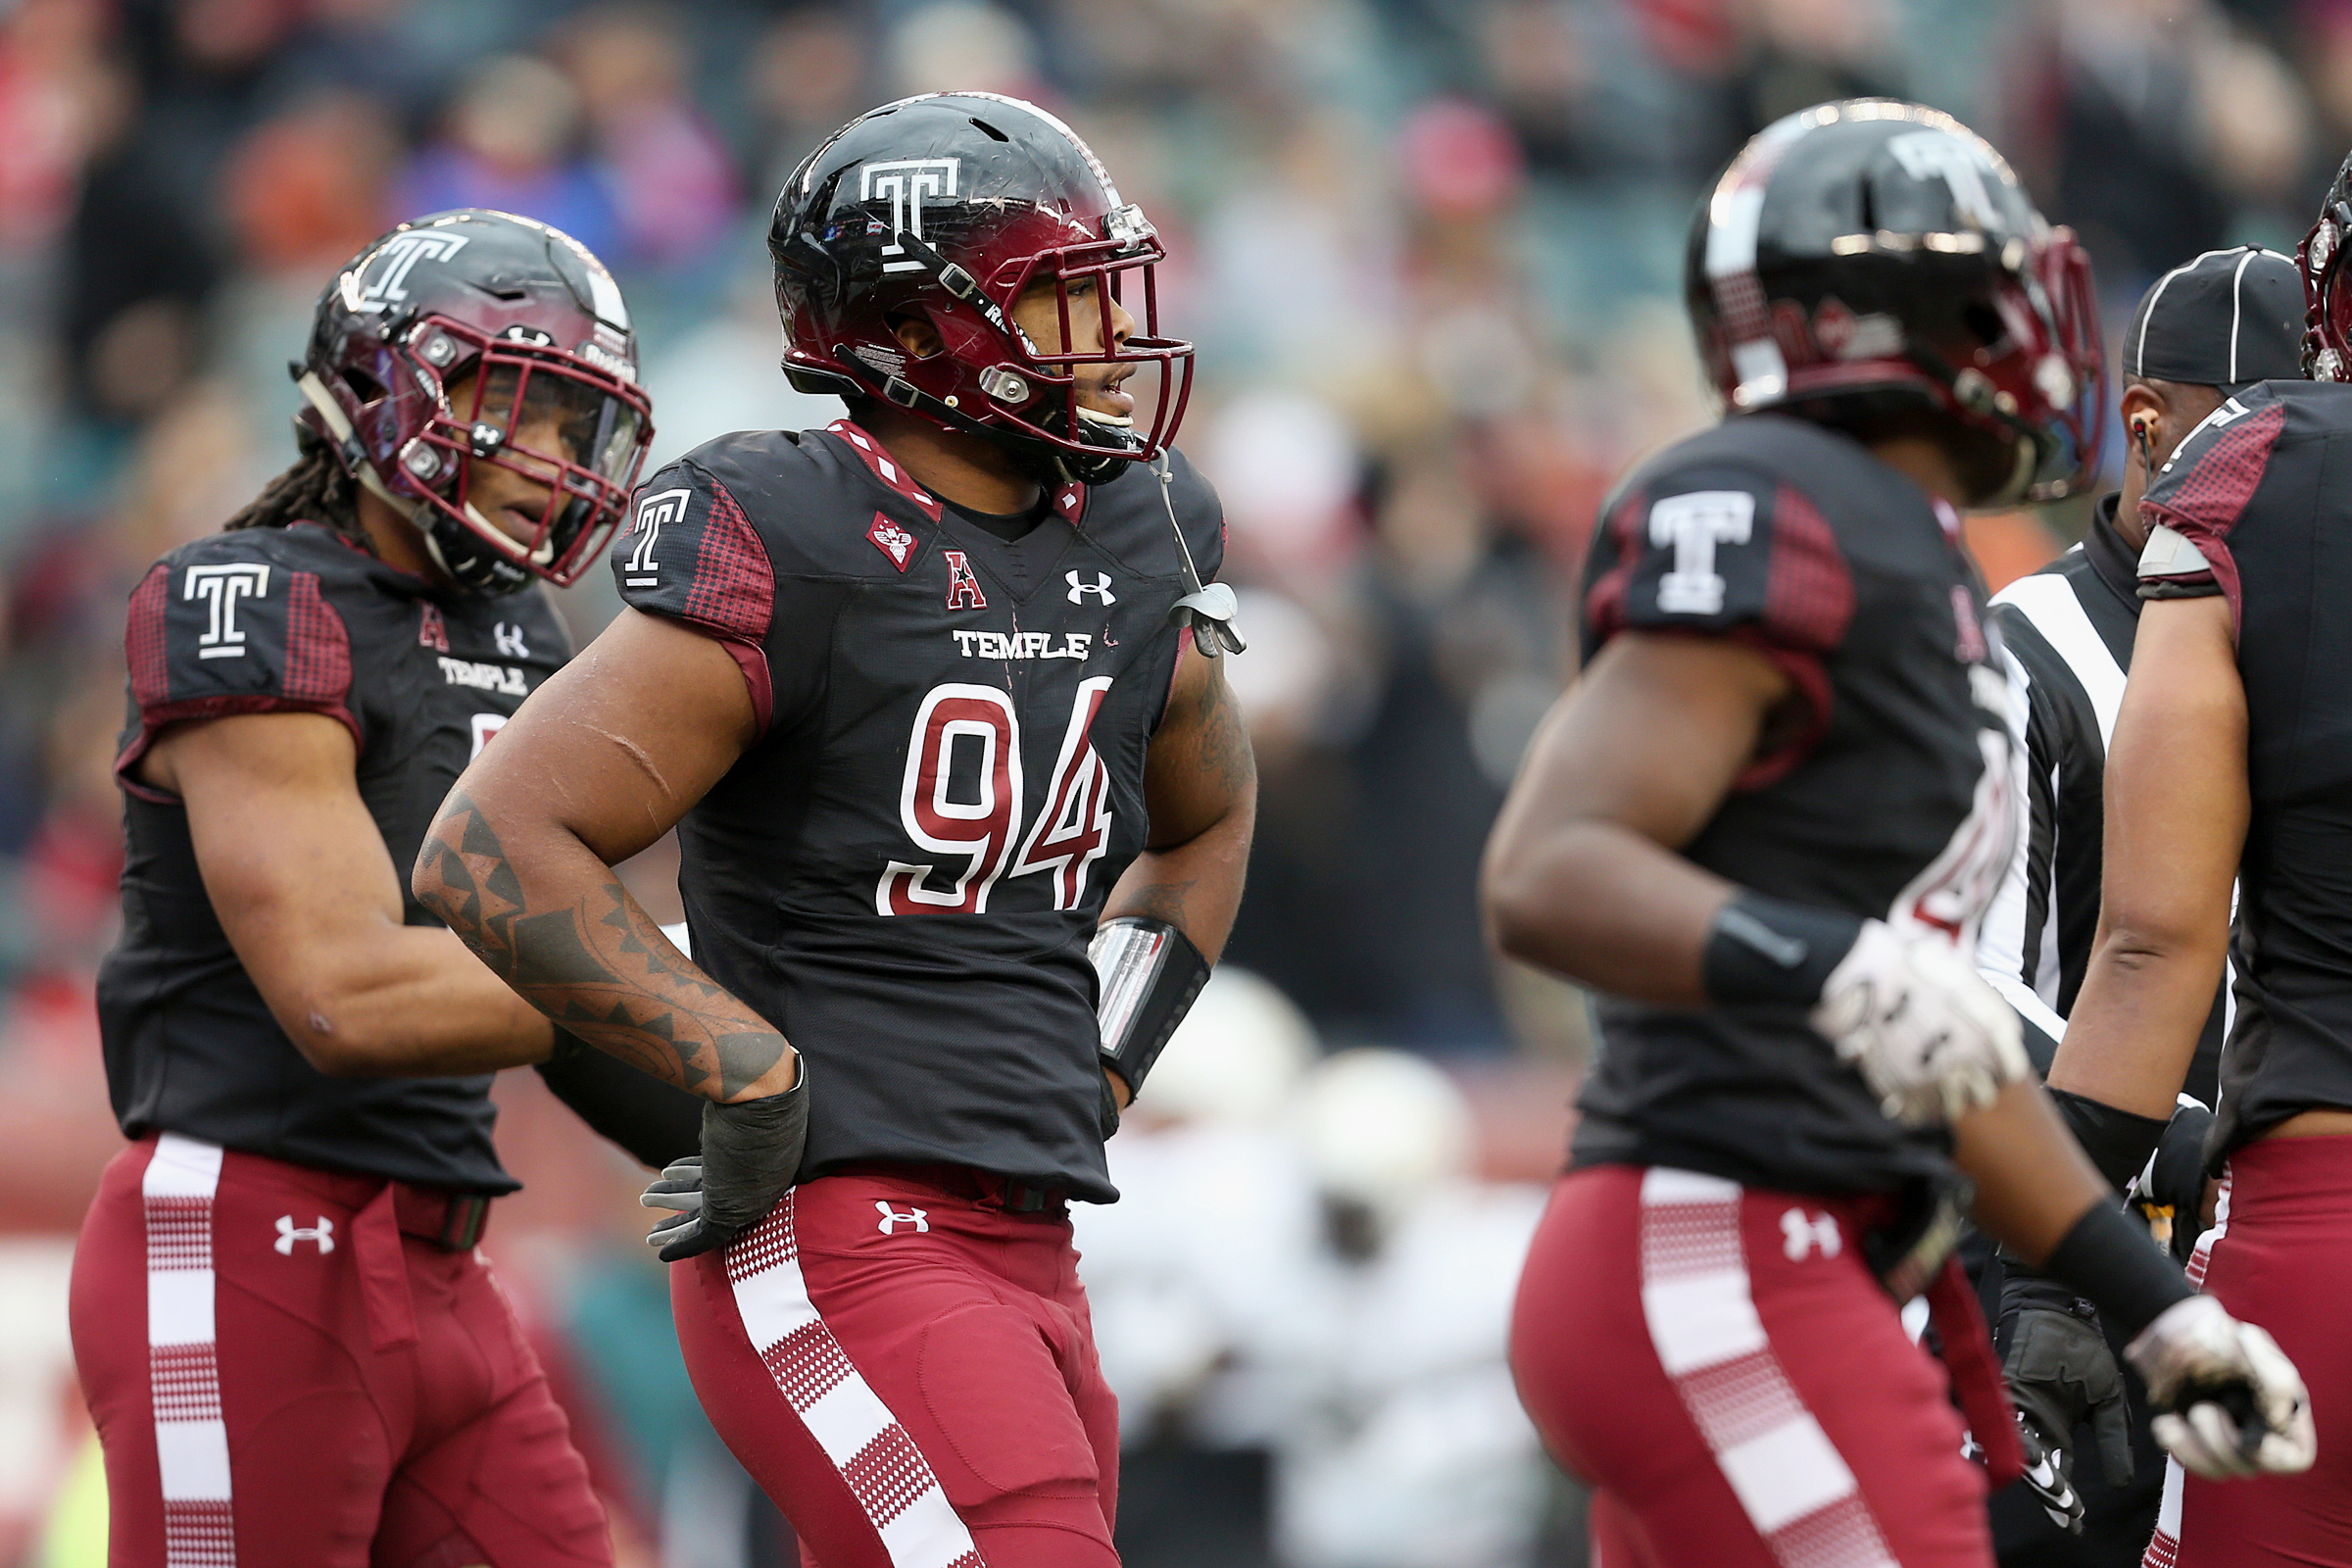 Temple defensive lineman Jullian Taylor (94) putting his hands on his hips after Central Florida scored a touchdown on Nov. 18.